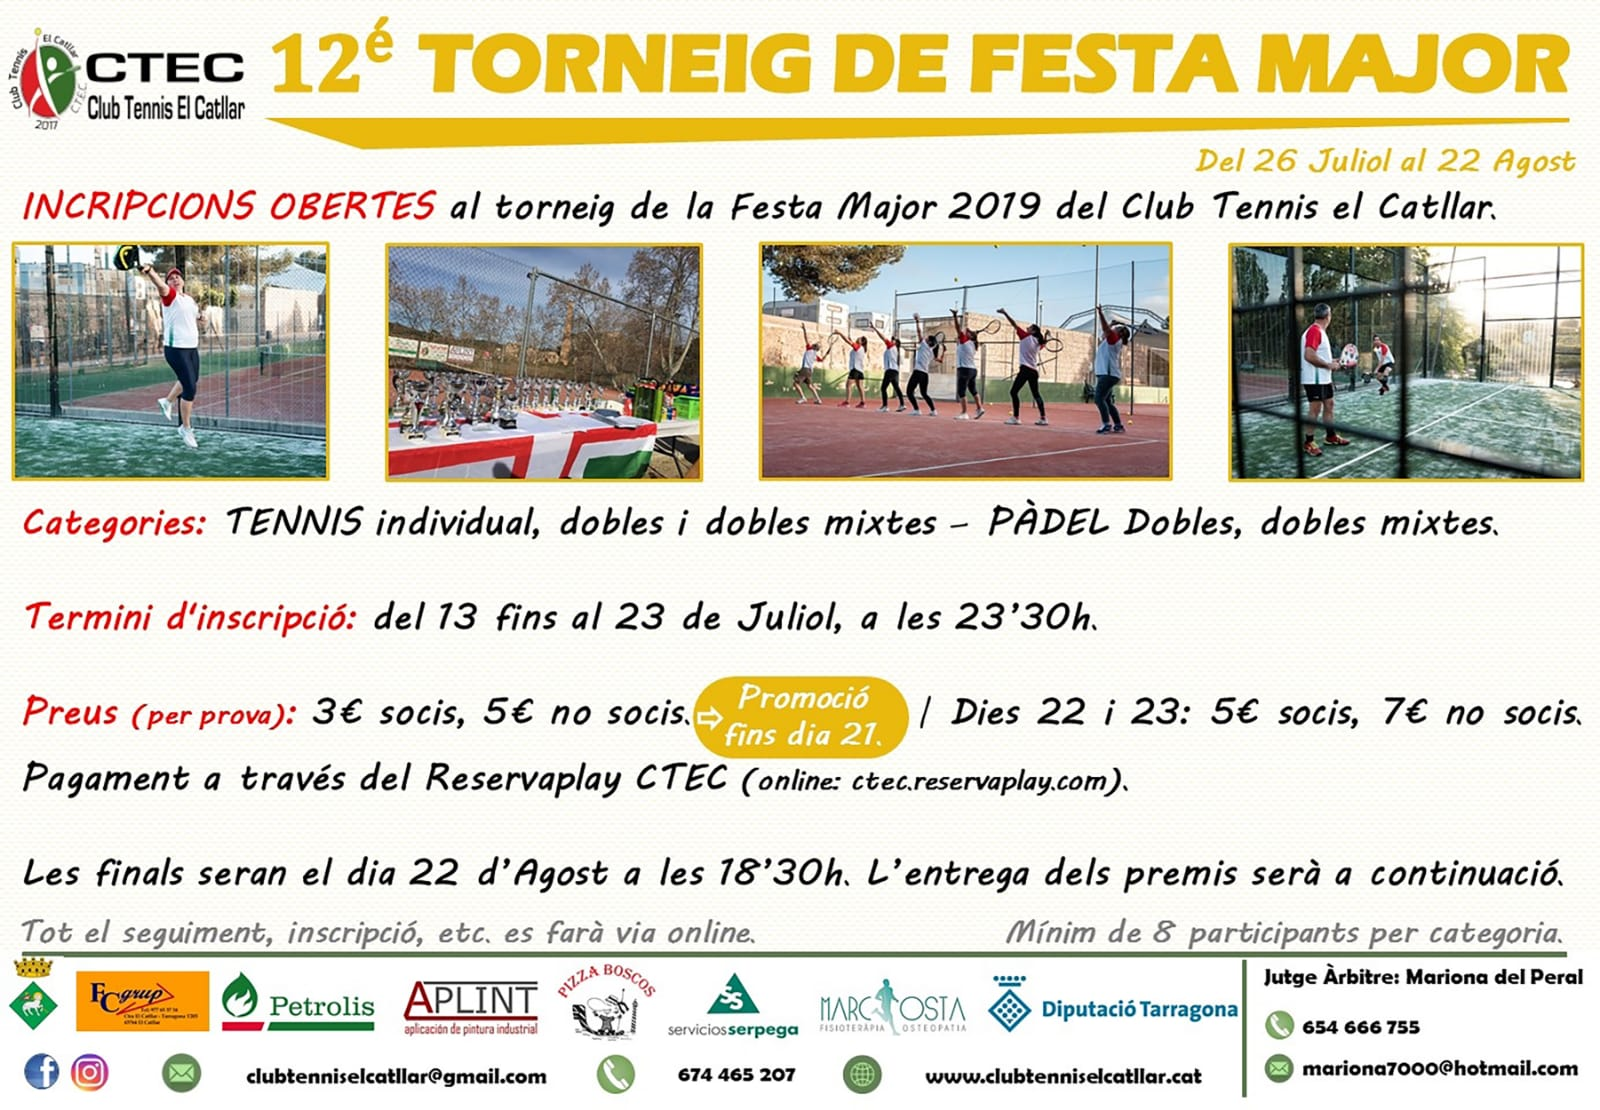 12è Torneig de Festa Major del 26/07 al 22/08. Club de tennis del Catllar